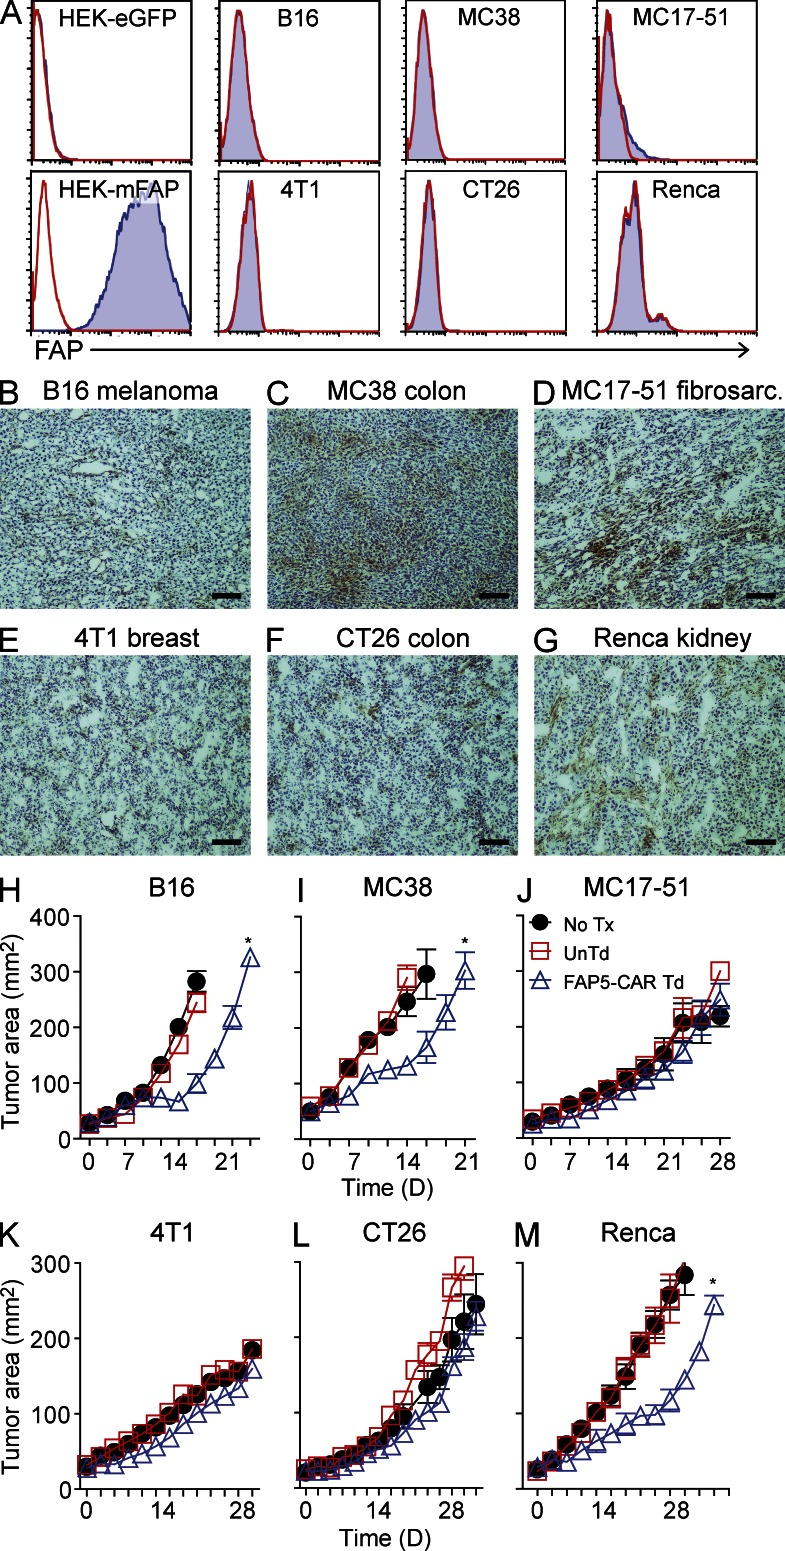 FAP expression in mouse tumors, and in vivo activity of FAP5-CAR–transduced T cells against various murine tumors. In vitro cultured B16, MC38, MC17-51, 4T1, CT26, and Renca murine tumors were assessed for FAP expression by flow cytometry with the FAP-specific antibody FAP5 (A). Solid line is isotype control and filled histogram is FAP5 stained. Results are representative of at least two independent experiments. Established (∼11–16 d) subcutaneously implanted B16 (B), MC38 (C), MC17-51 (D), 4T1 (E), CT26 (F), and Renca (G) tumors were harvested from mice (irradiated before harvest) and assessed for FAP expression by IHC using biotinylated-FAP5 antibody. Bars, 400 µm. Representative of at least two independent experiments. C57BL/6 mice bearing established B16 (H), MC38 (I), MC17-51 (J) tumors, and BALB/c mice bearing established 4T1 (K), CT26 (L), or Renca (M) tumors were left untreated (No Tx) or treated with 10 7 UnTd or 10 7 FAP5-CAR Td T cells, and the perpendicular diameters of the tumors were measured over time. Mean ± SEM. Results are representative of at least two independent experiments for H–J and one experiment for K–M with initially five mice per group. *, P